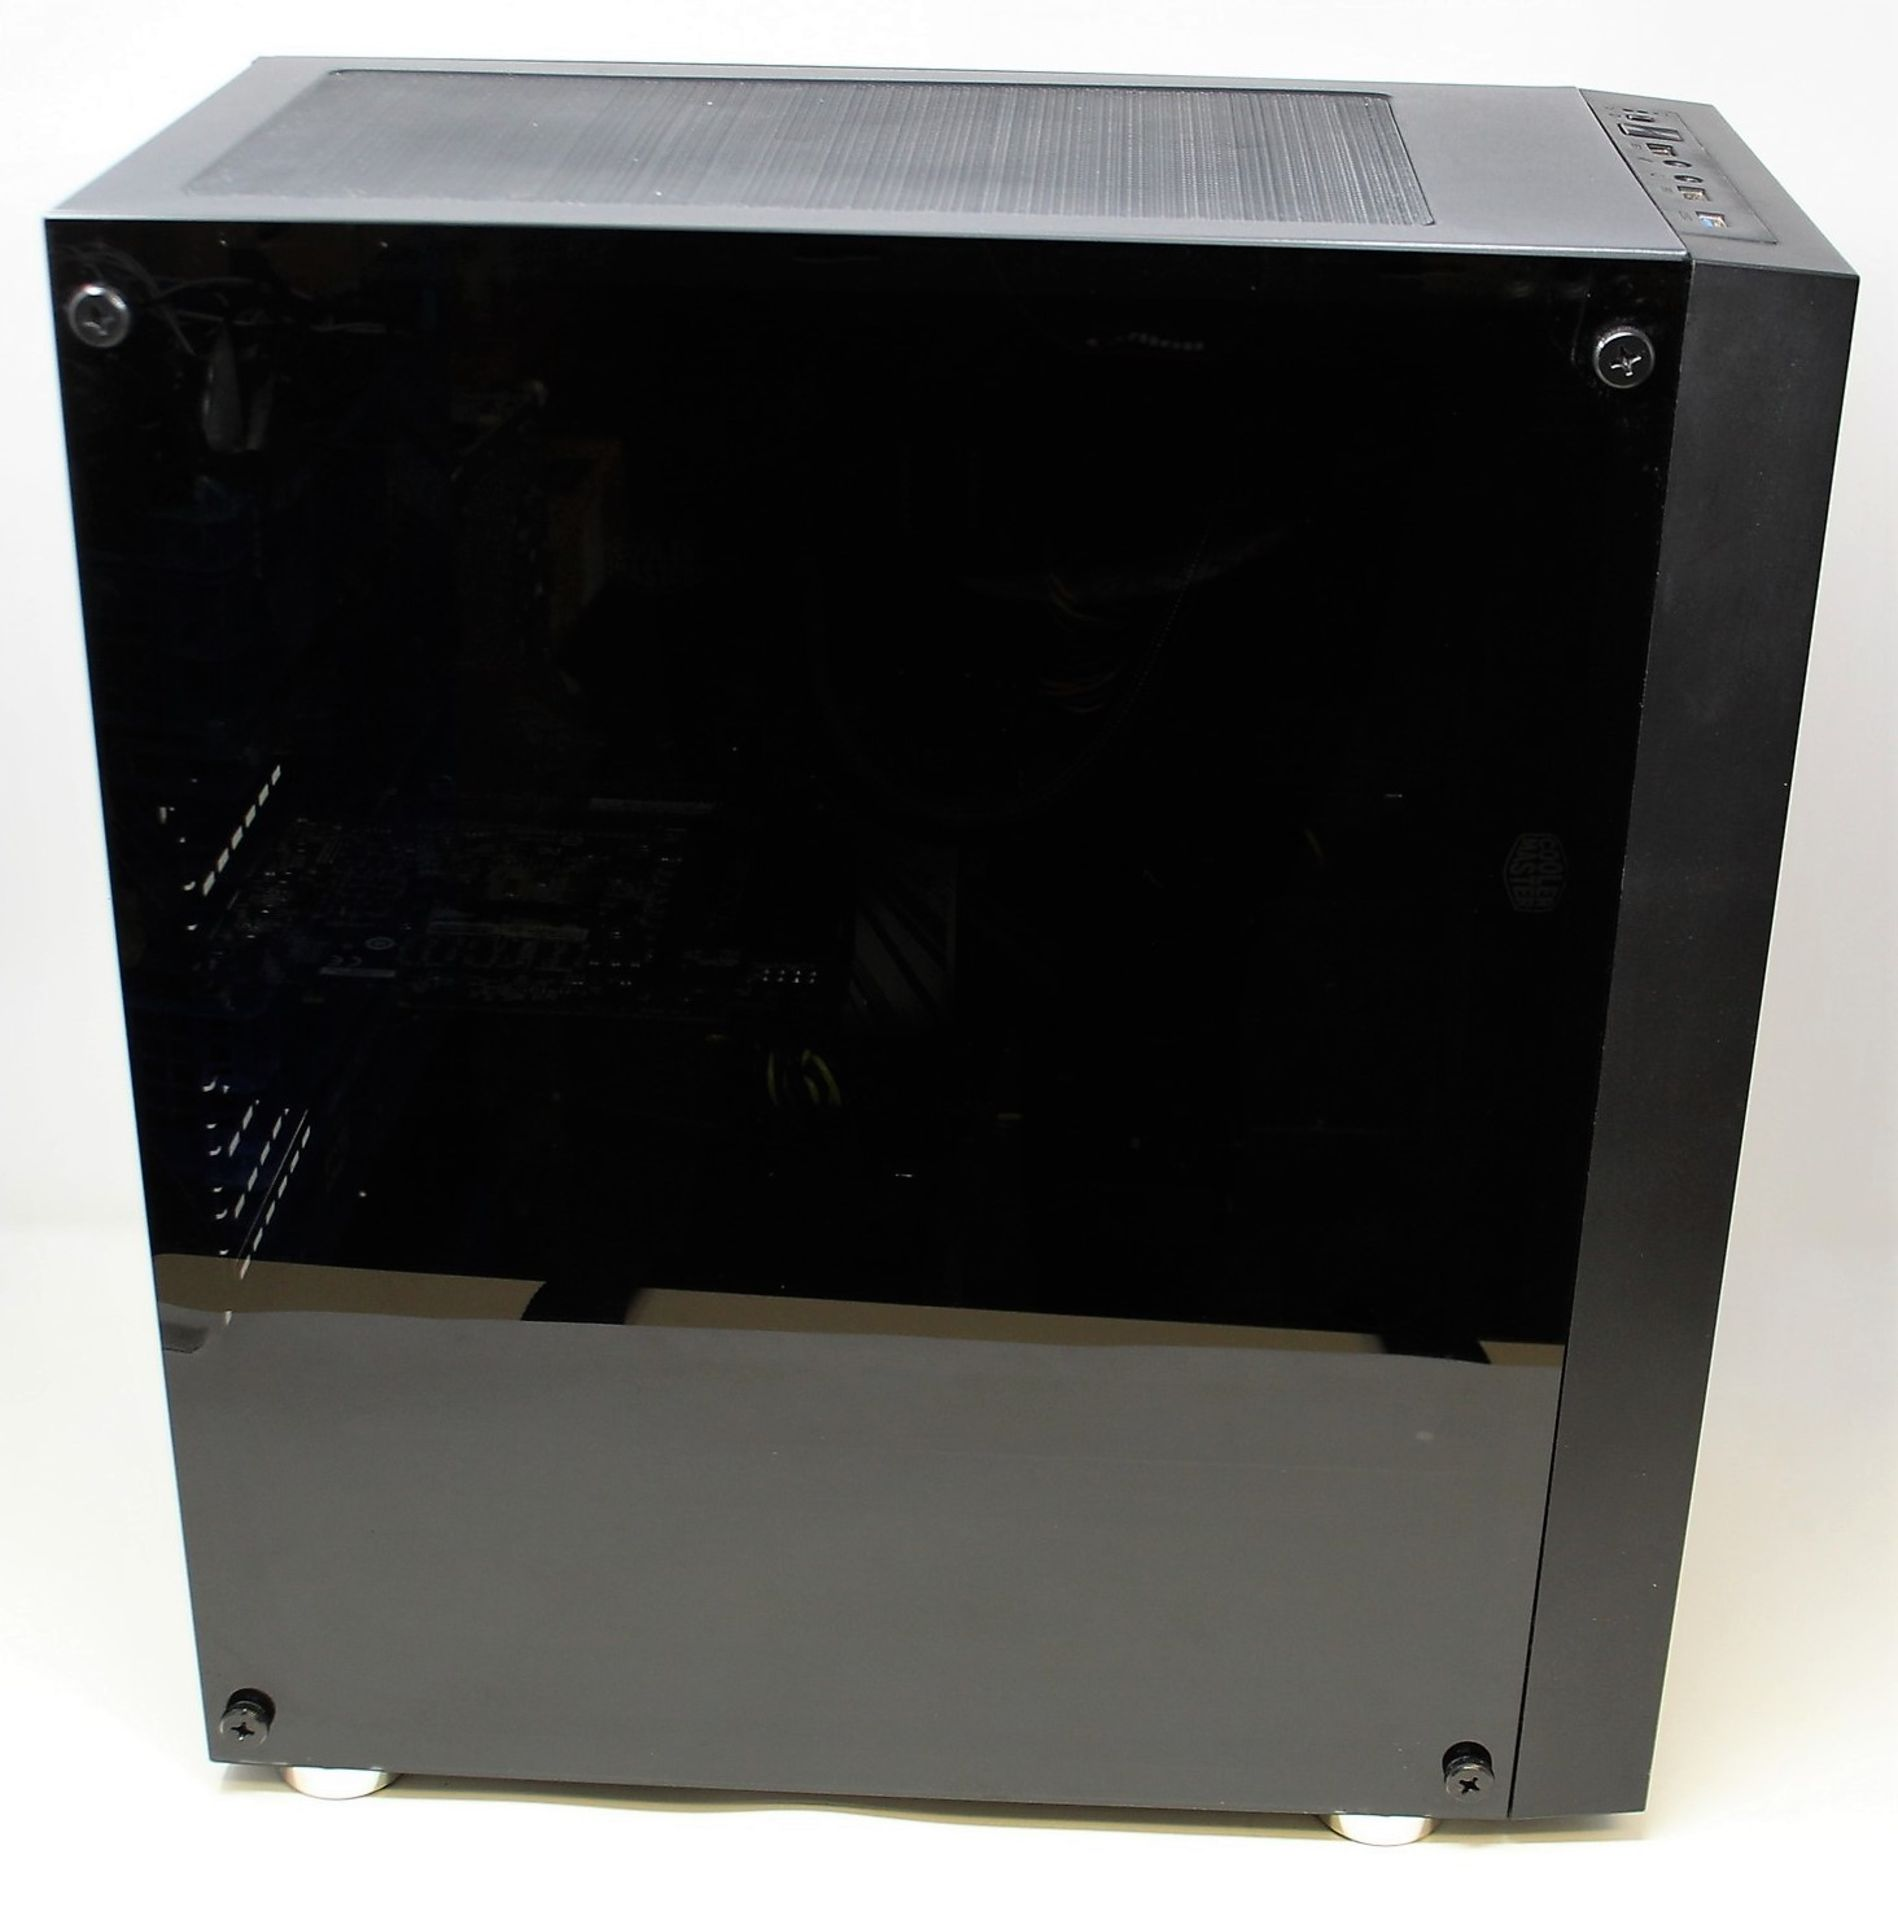 A pre-owned Cube Falcon RGB Custom Gaming PC in an AreoCool Quartz RGB Housing with Intel Core i5- - Image 15 of 15